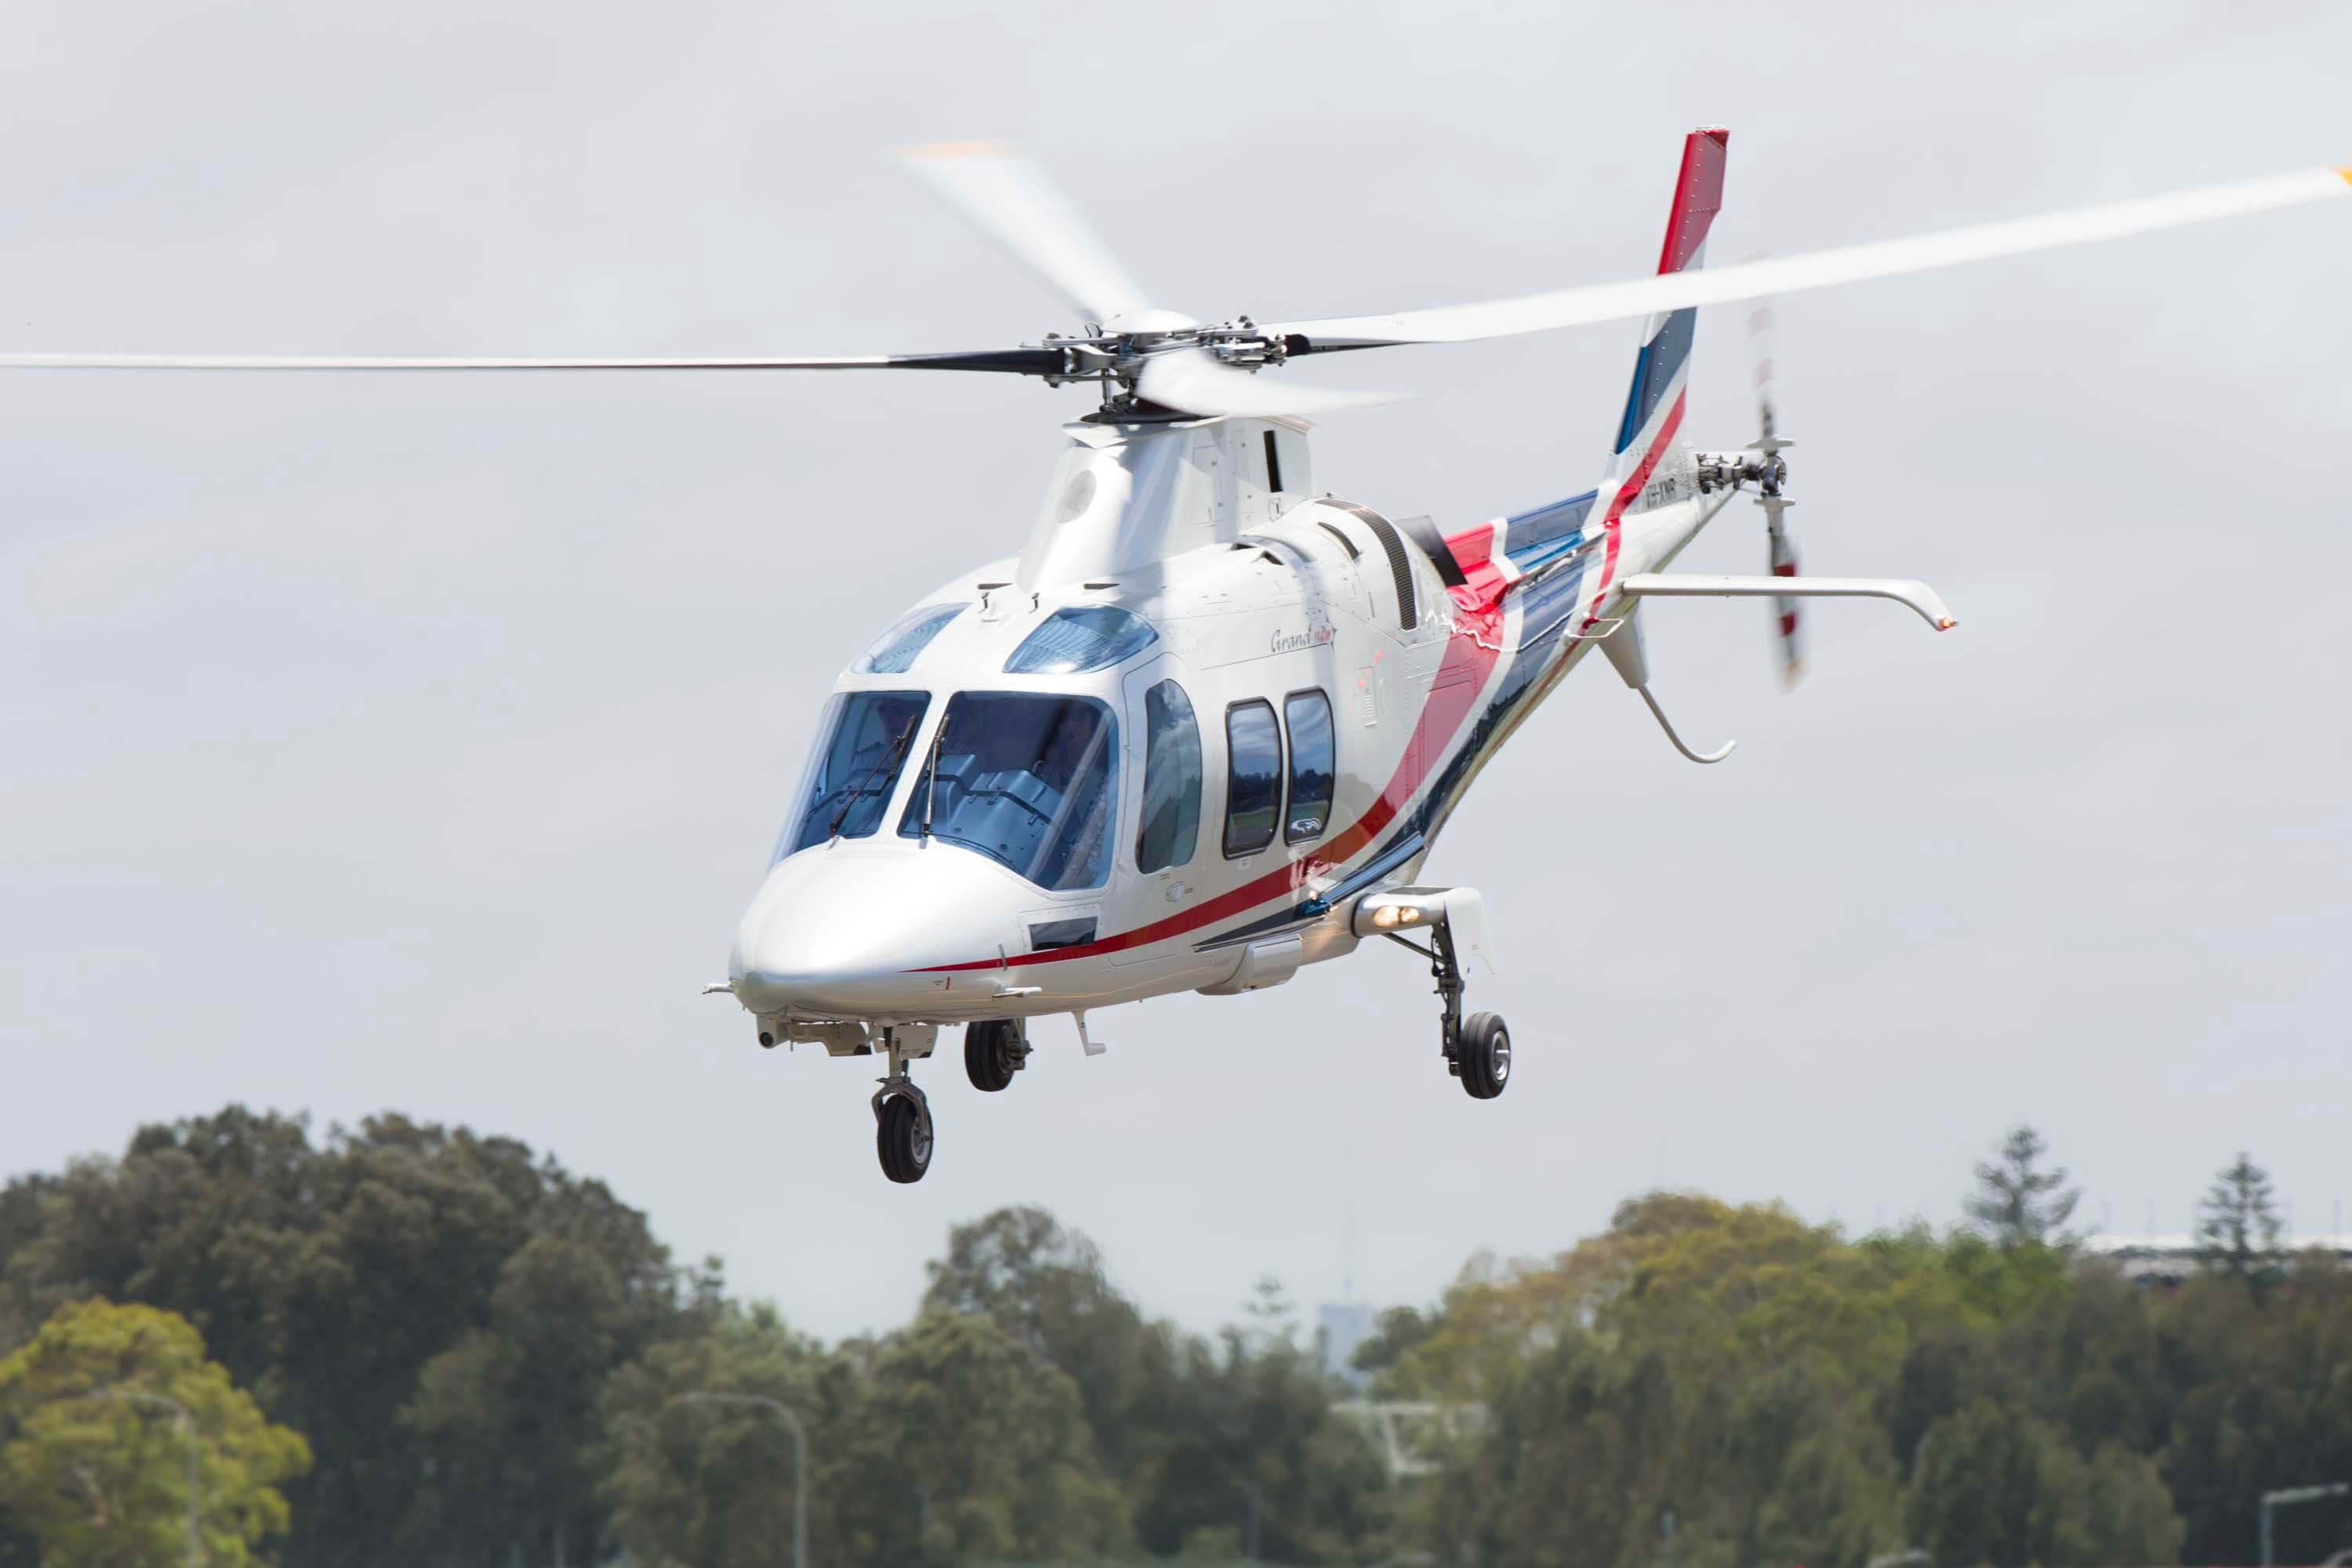 Helicopter rent in ahmeddabad